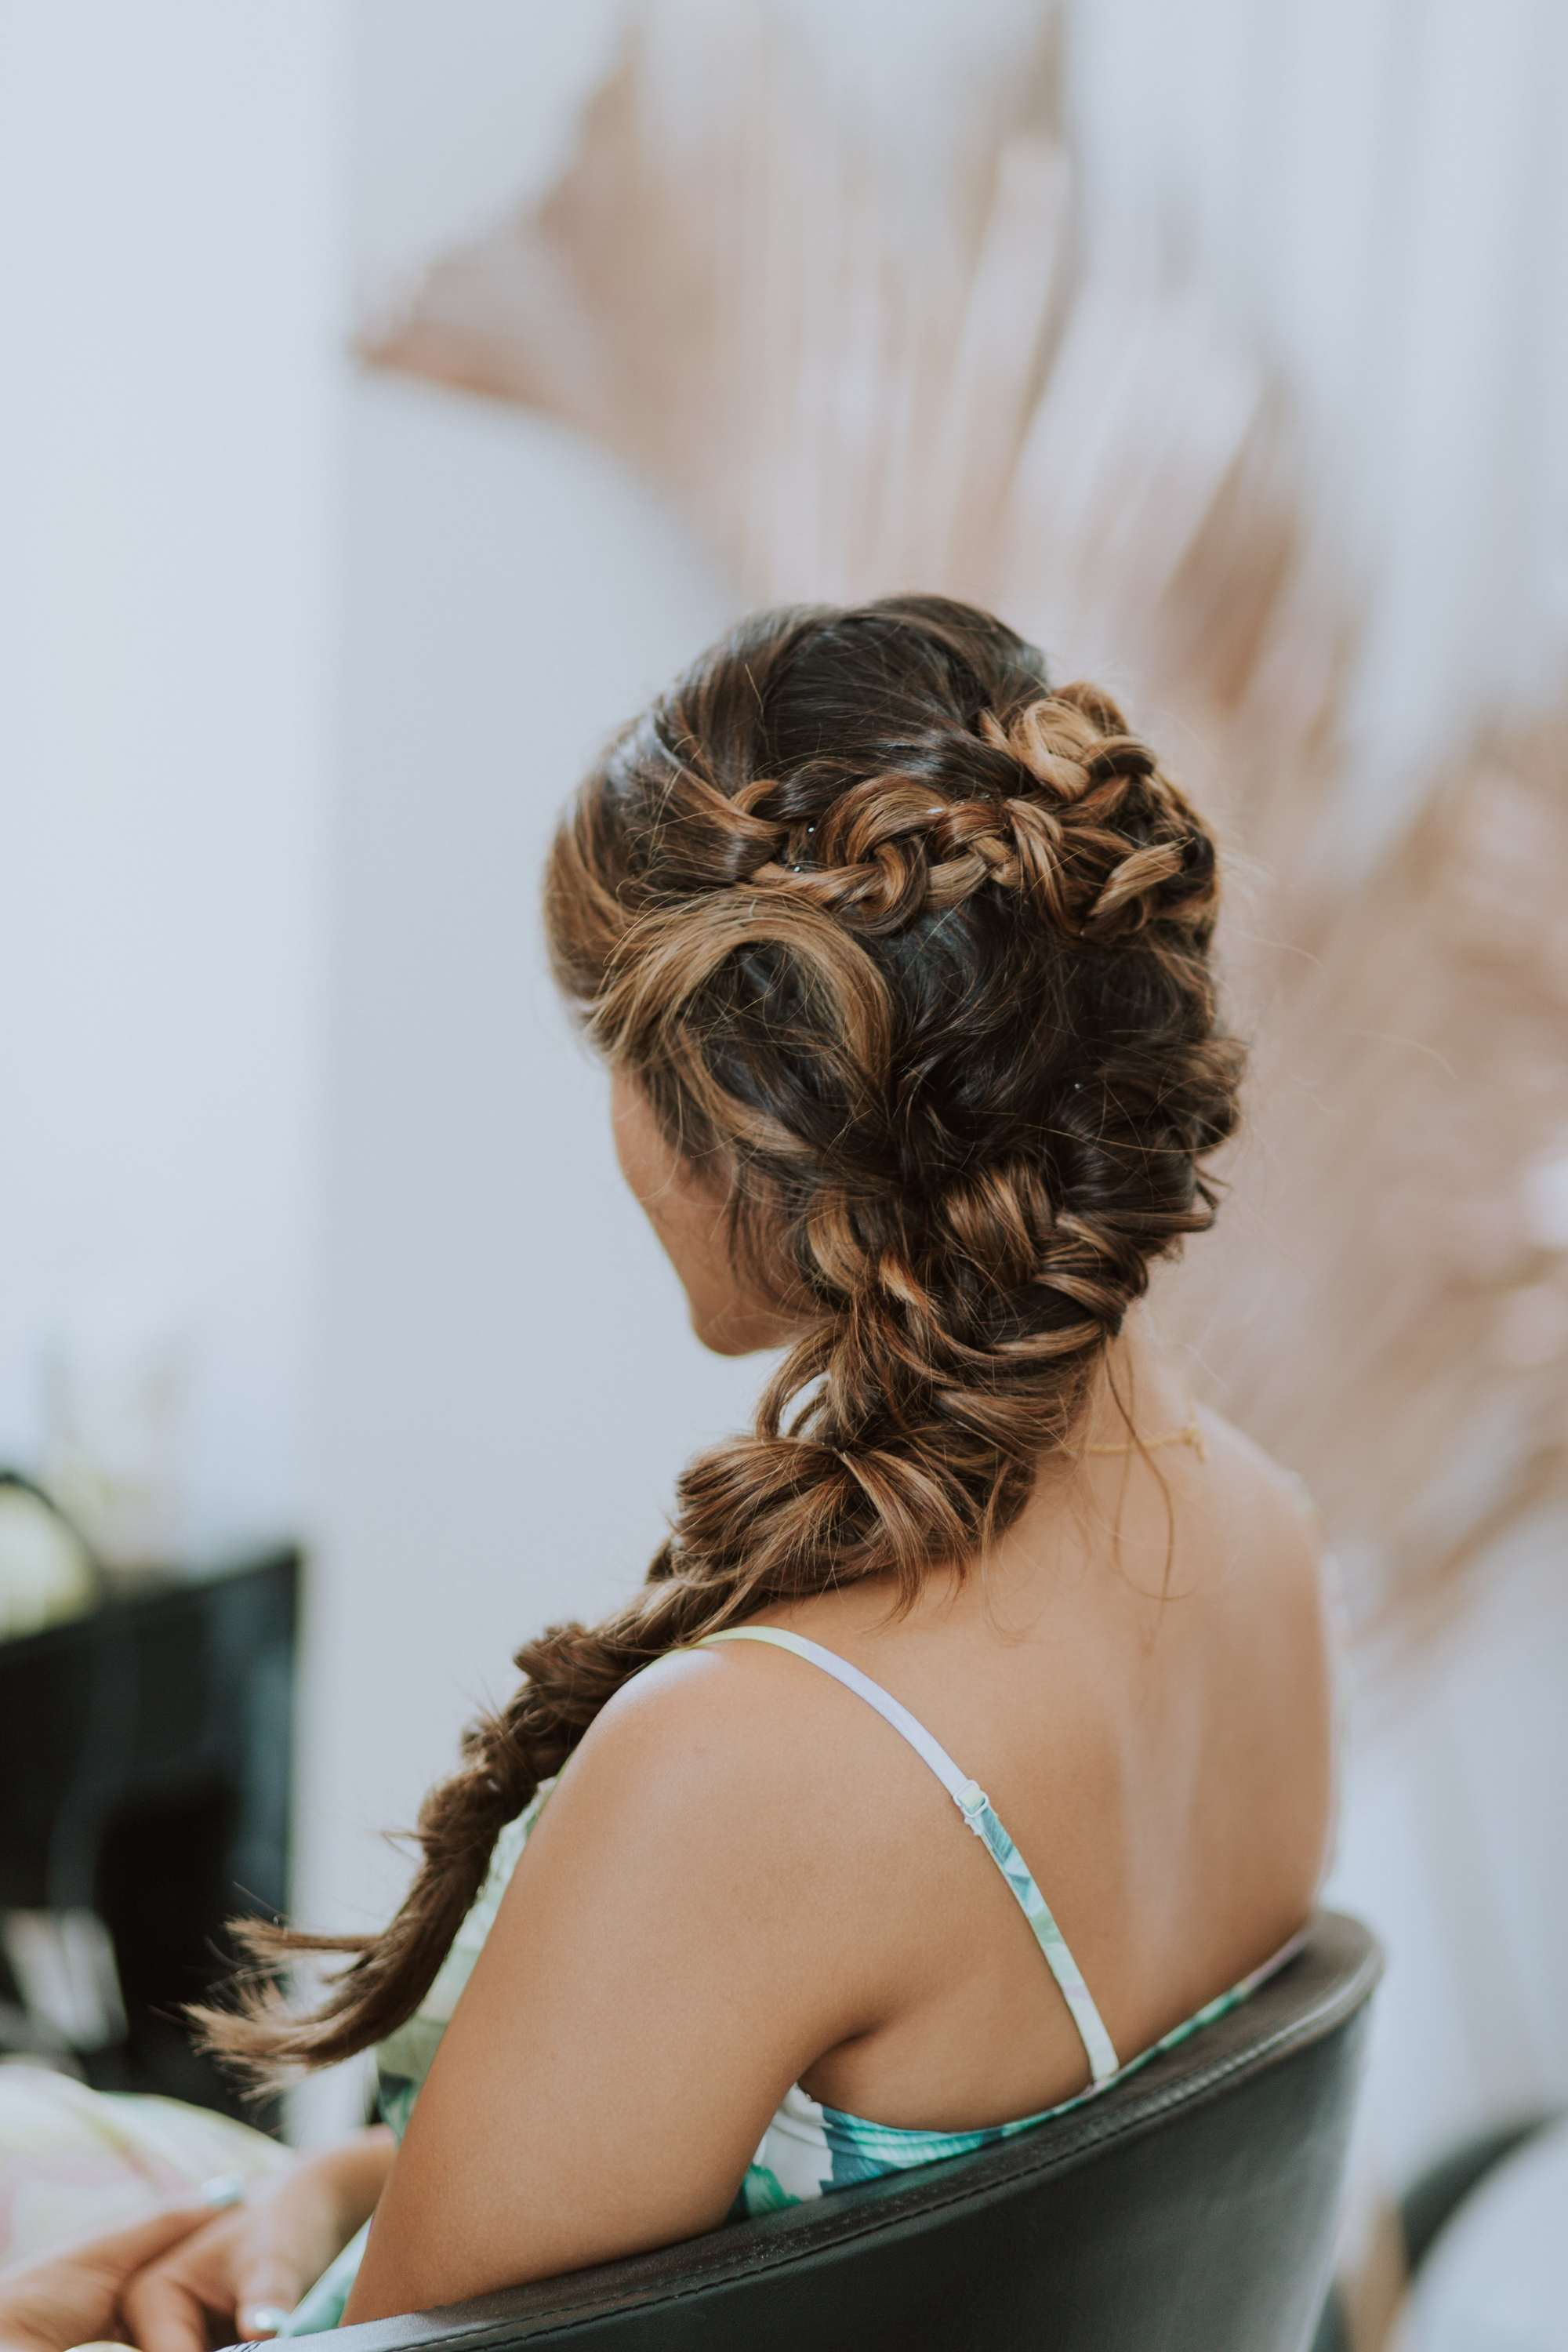 natural wavy hair: close up shot of woman from behind with a wavy intricate side braid, wearing a floral print spaghetti top and sitting in a chair